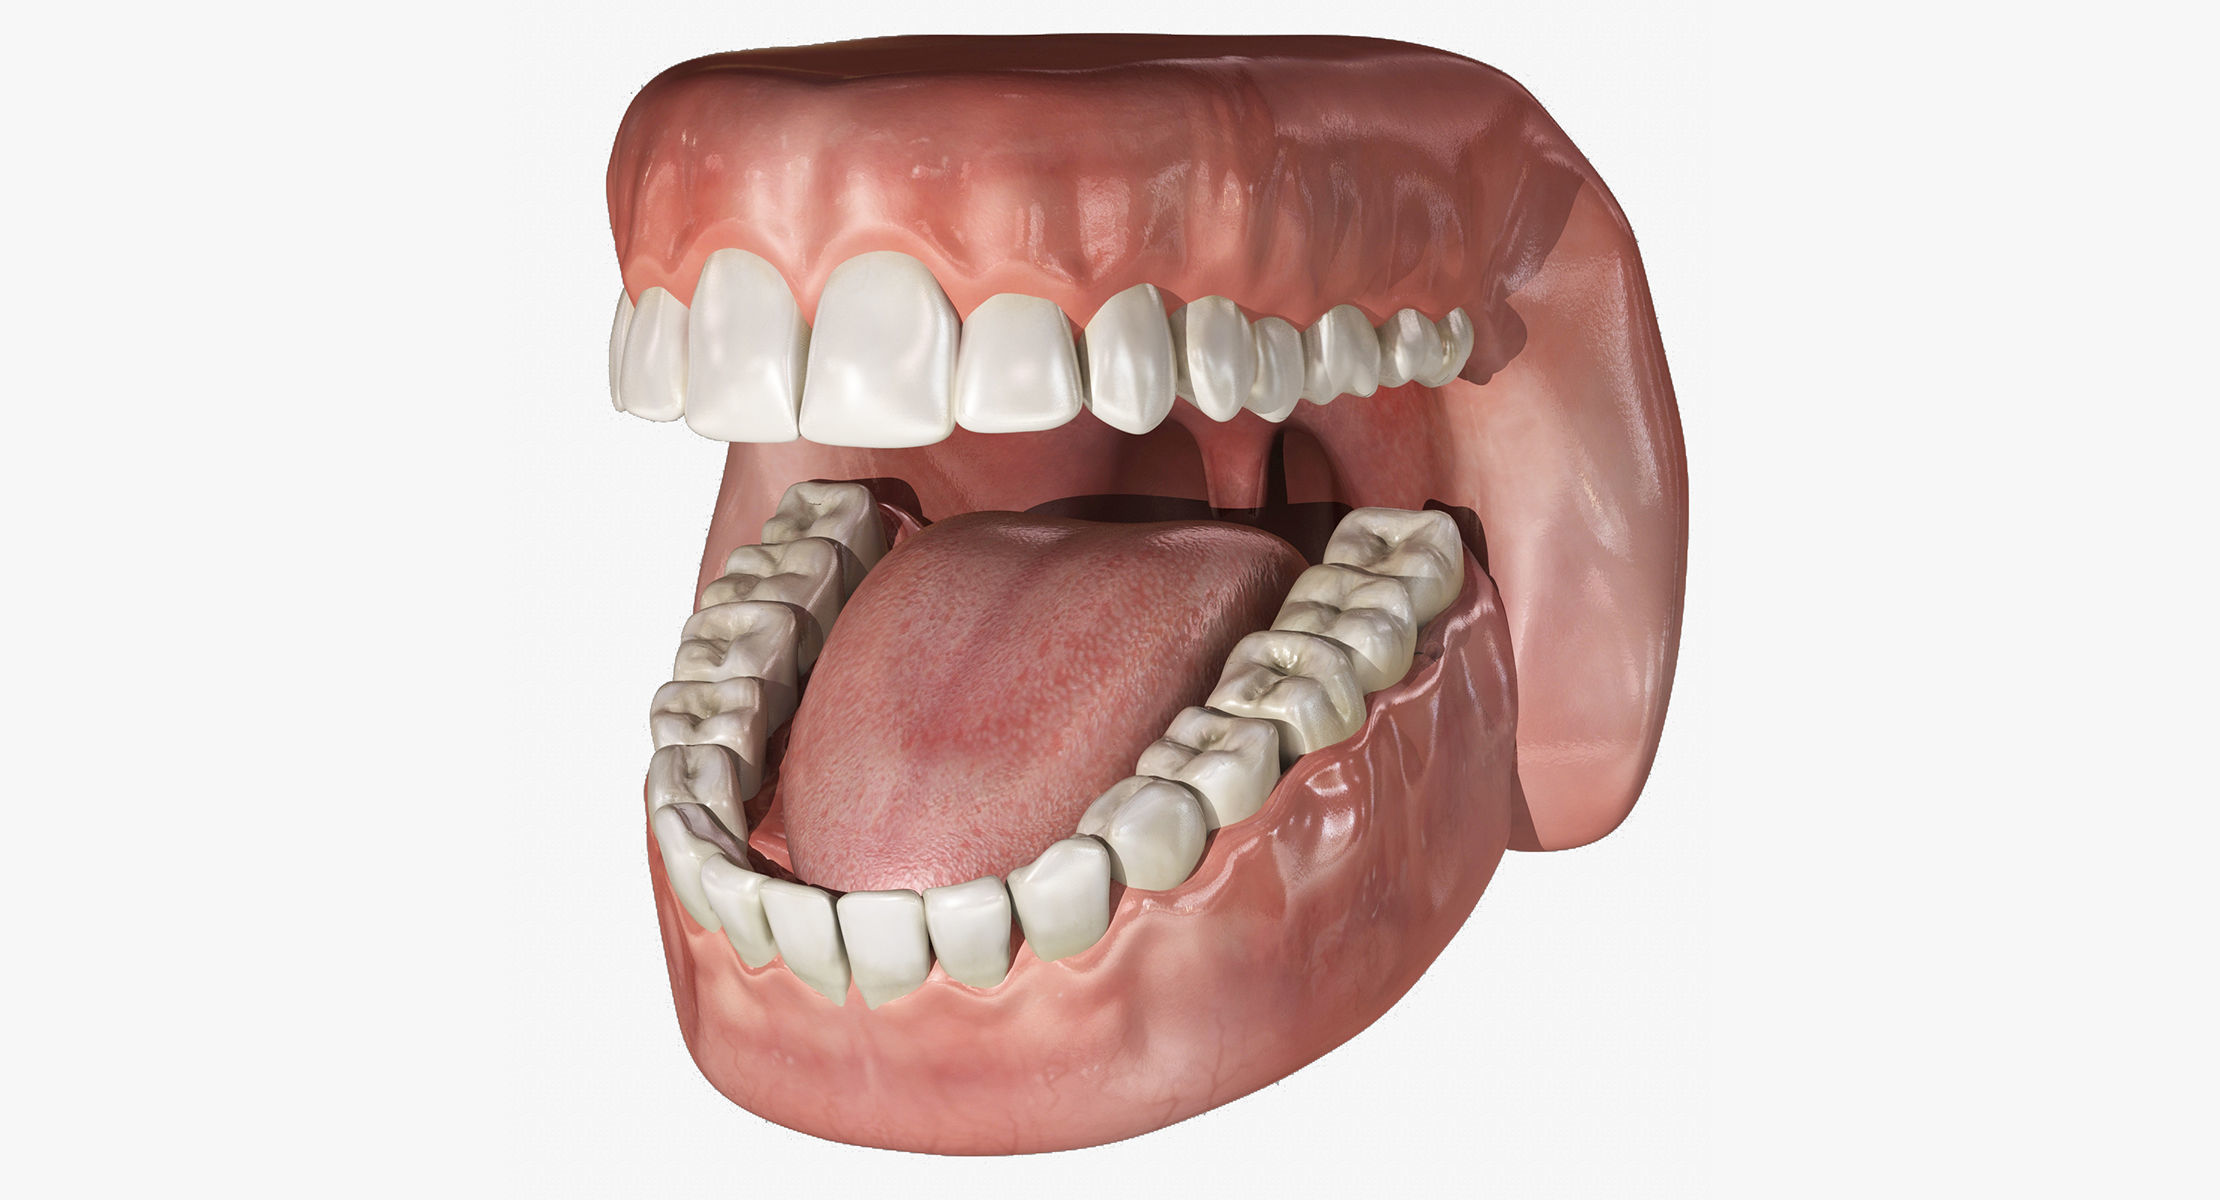 Human Mouth With Teeth Rigged